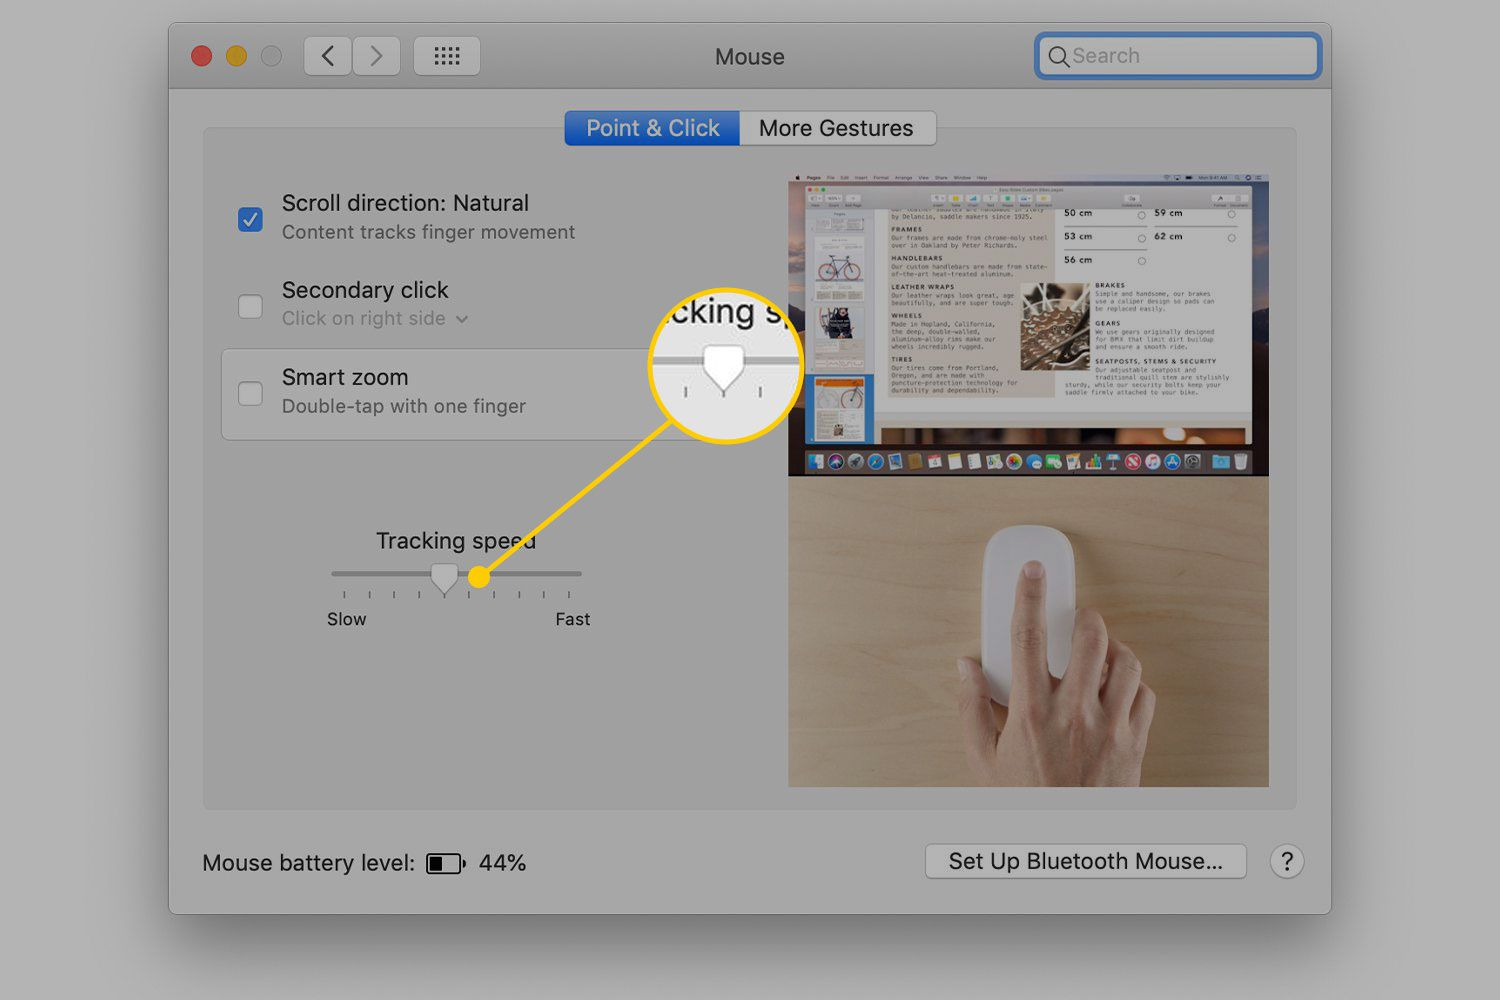 Tracking Speed in Mouse settings on a Mac